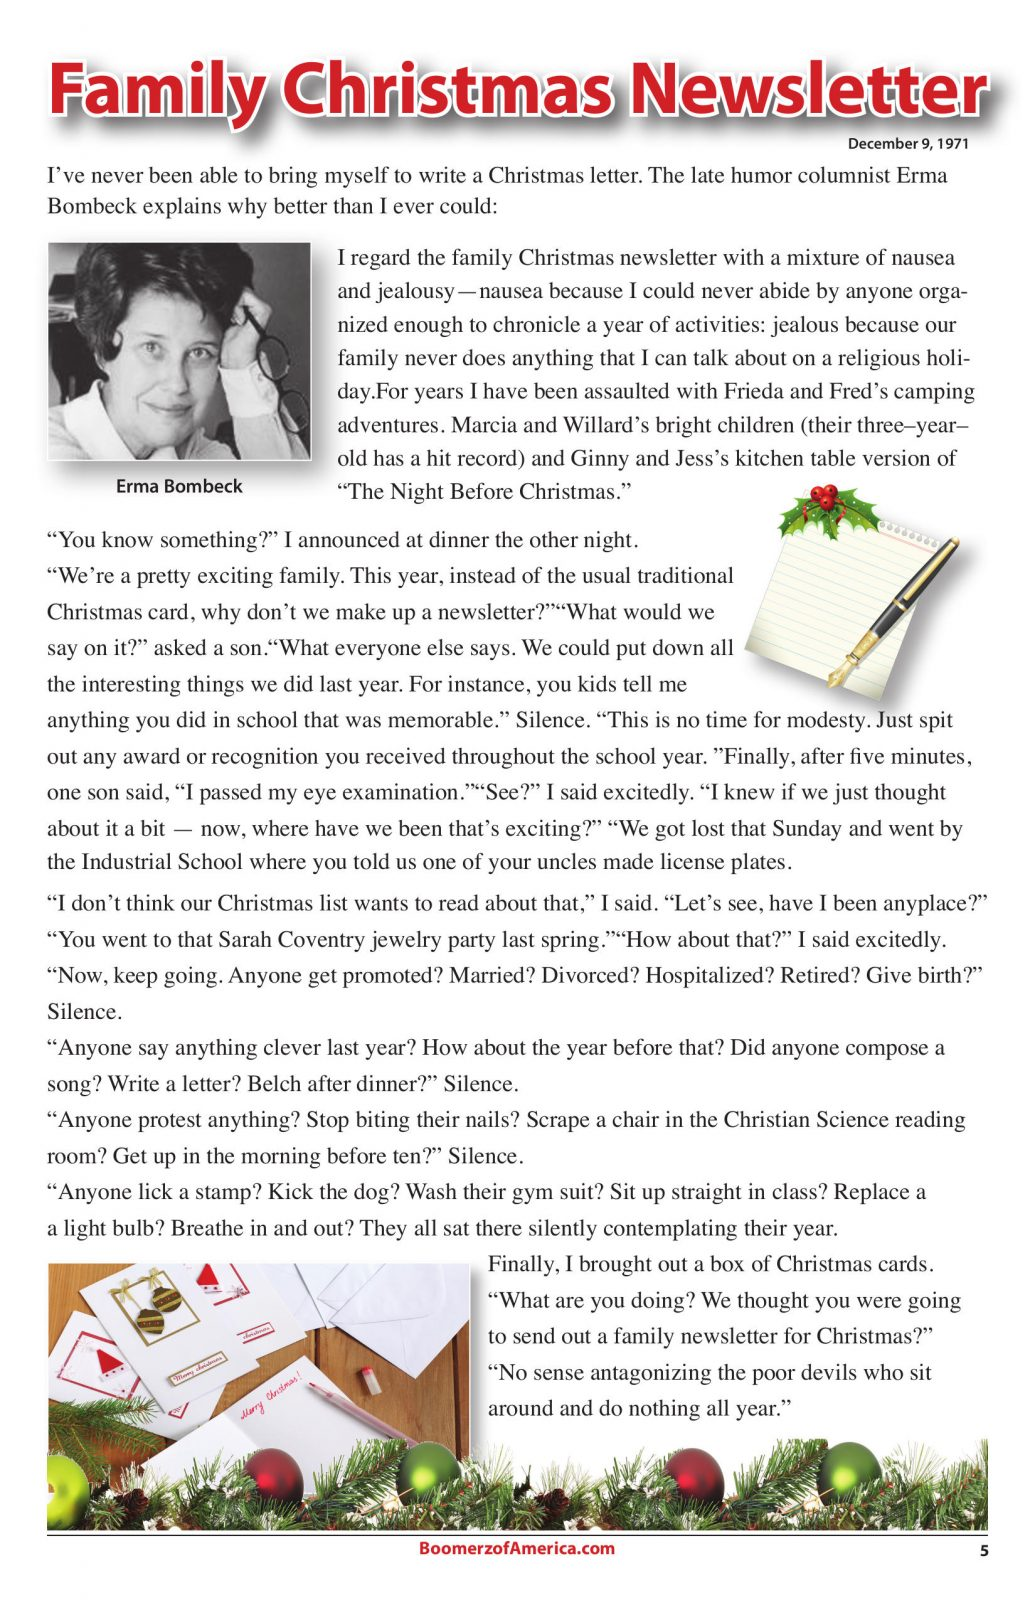 07-July-2019 Boomerz of America Erma Bombeck Family Christmas Newsletter